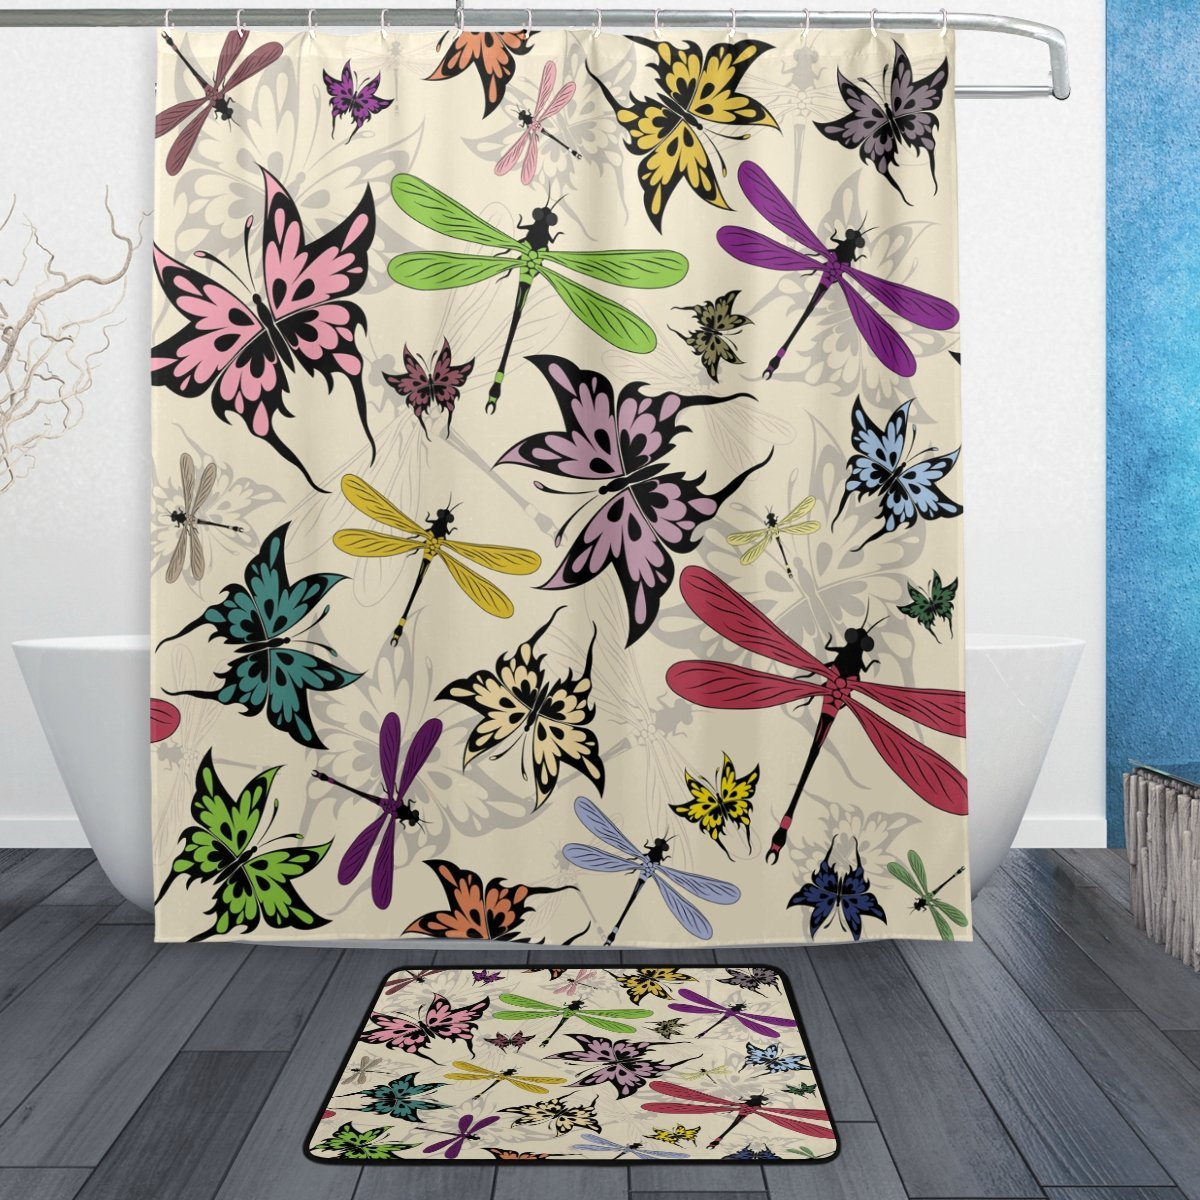 Vintage Colorful Butterfly Dragonfly Waterproof Polyester Fabric Shower Curtain with Hooks Doormat Bath Floor Mat Bathroom Home